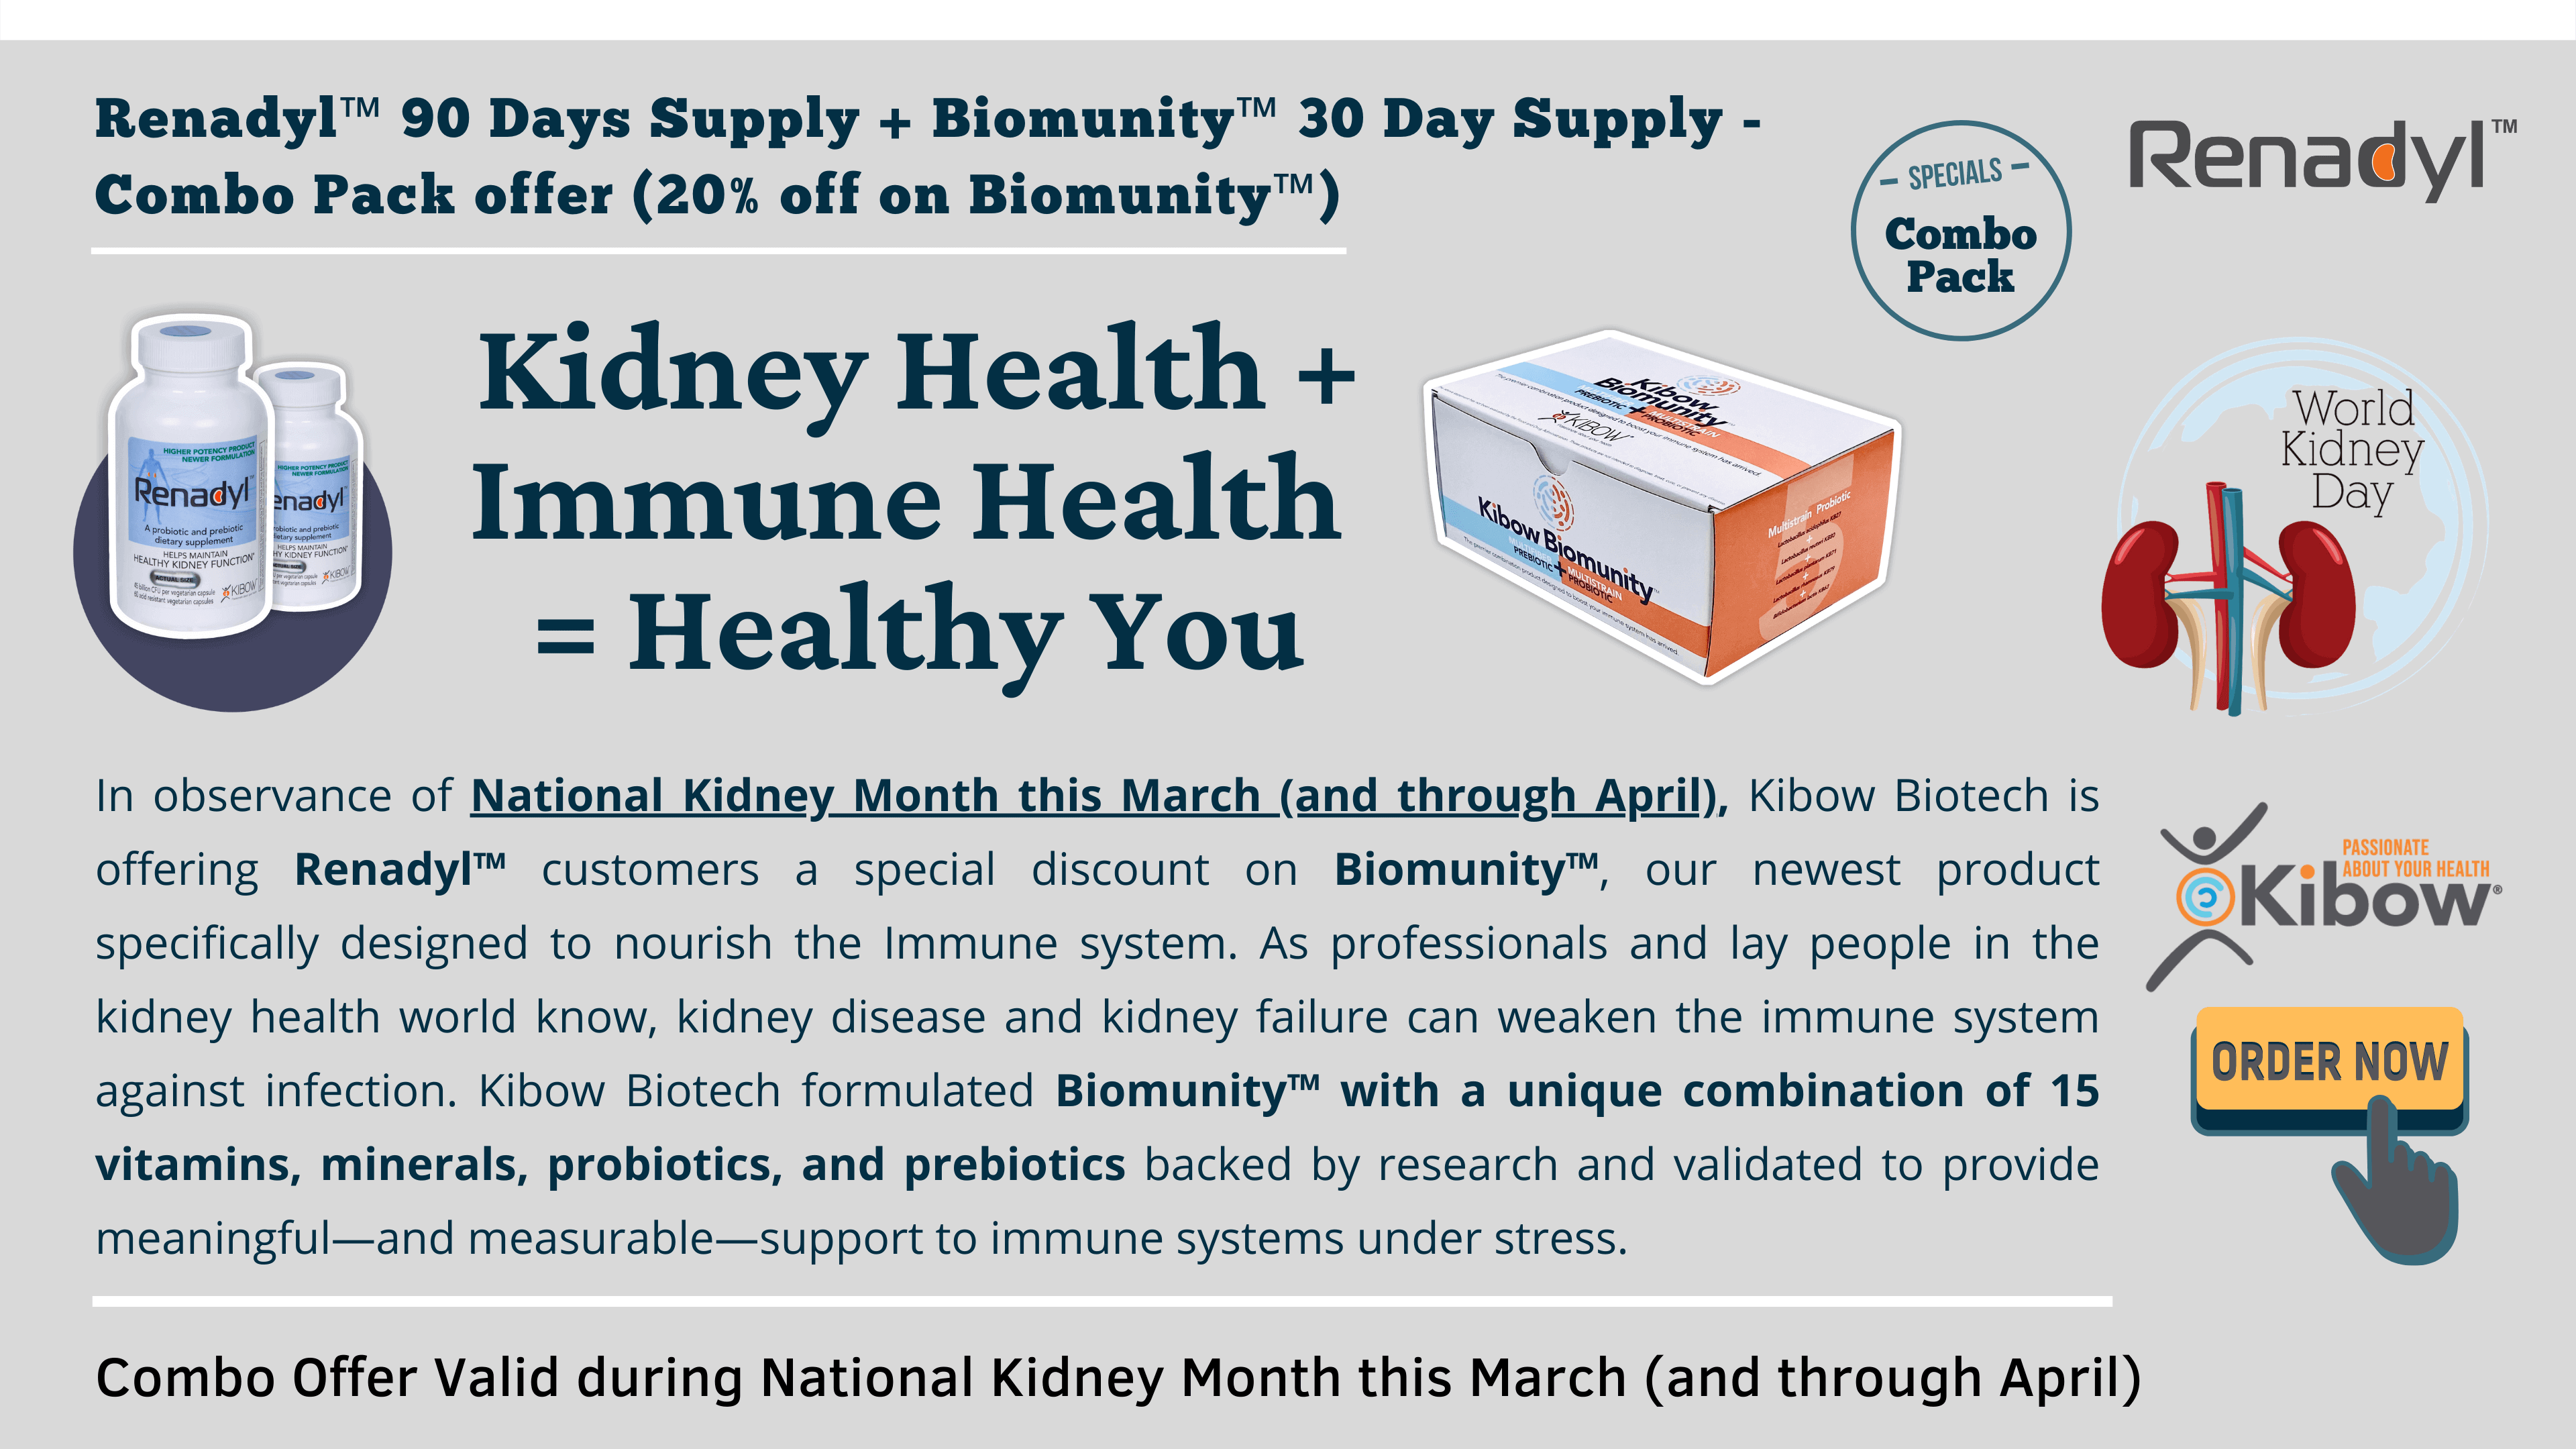 renadyl-biomunity-combo-for-quality-of-life-store-banner.png